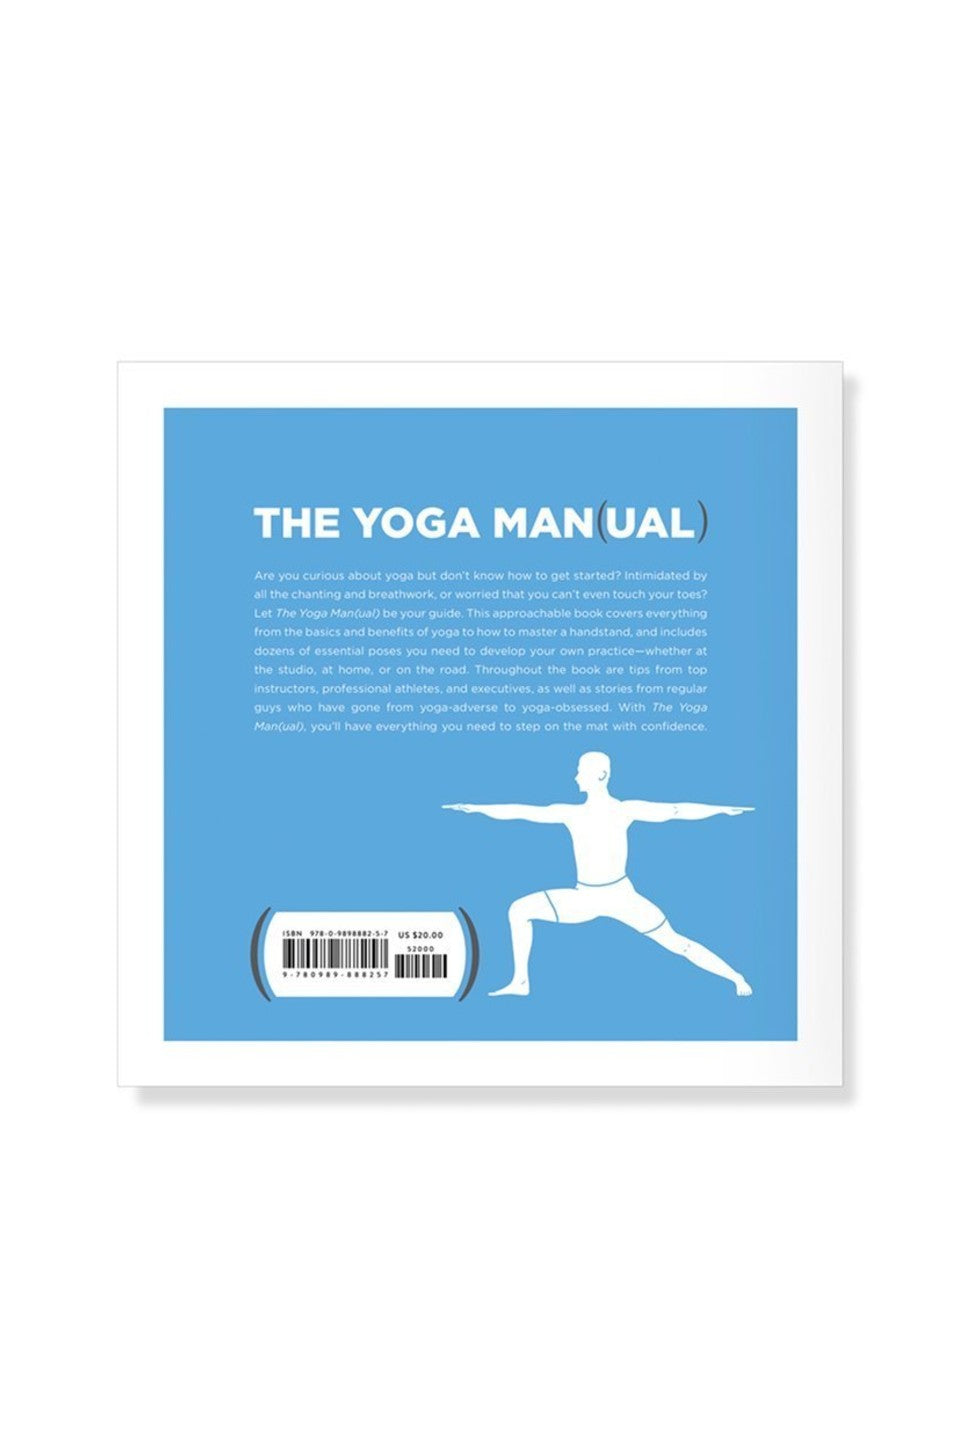 W&P - The Yoga Man(ual) - Back